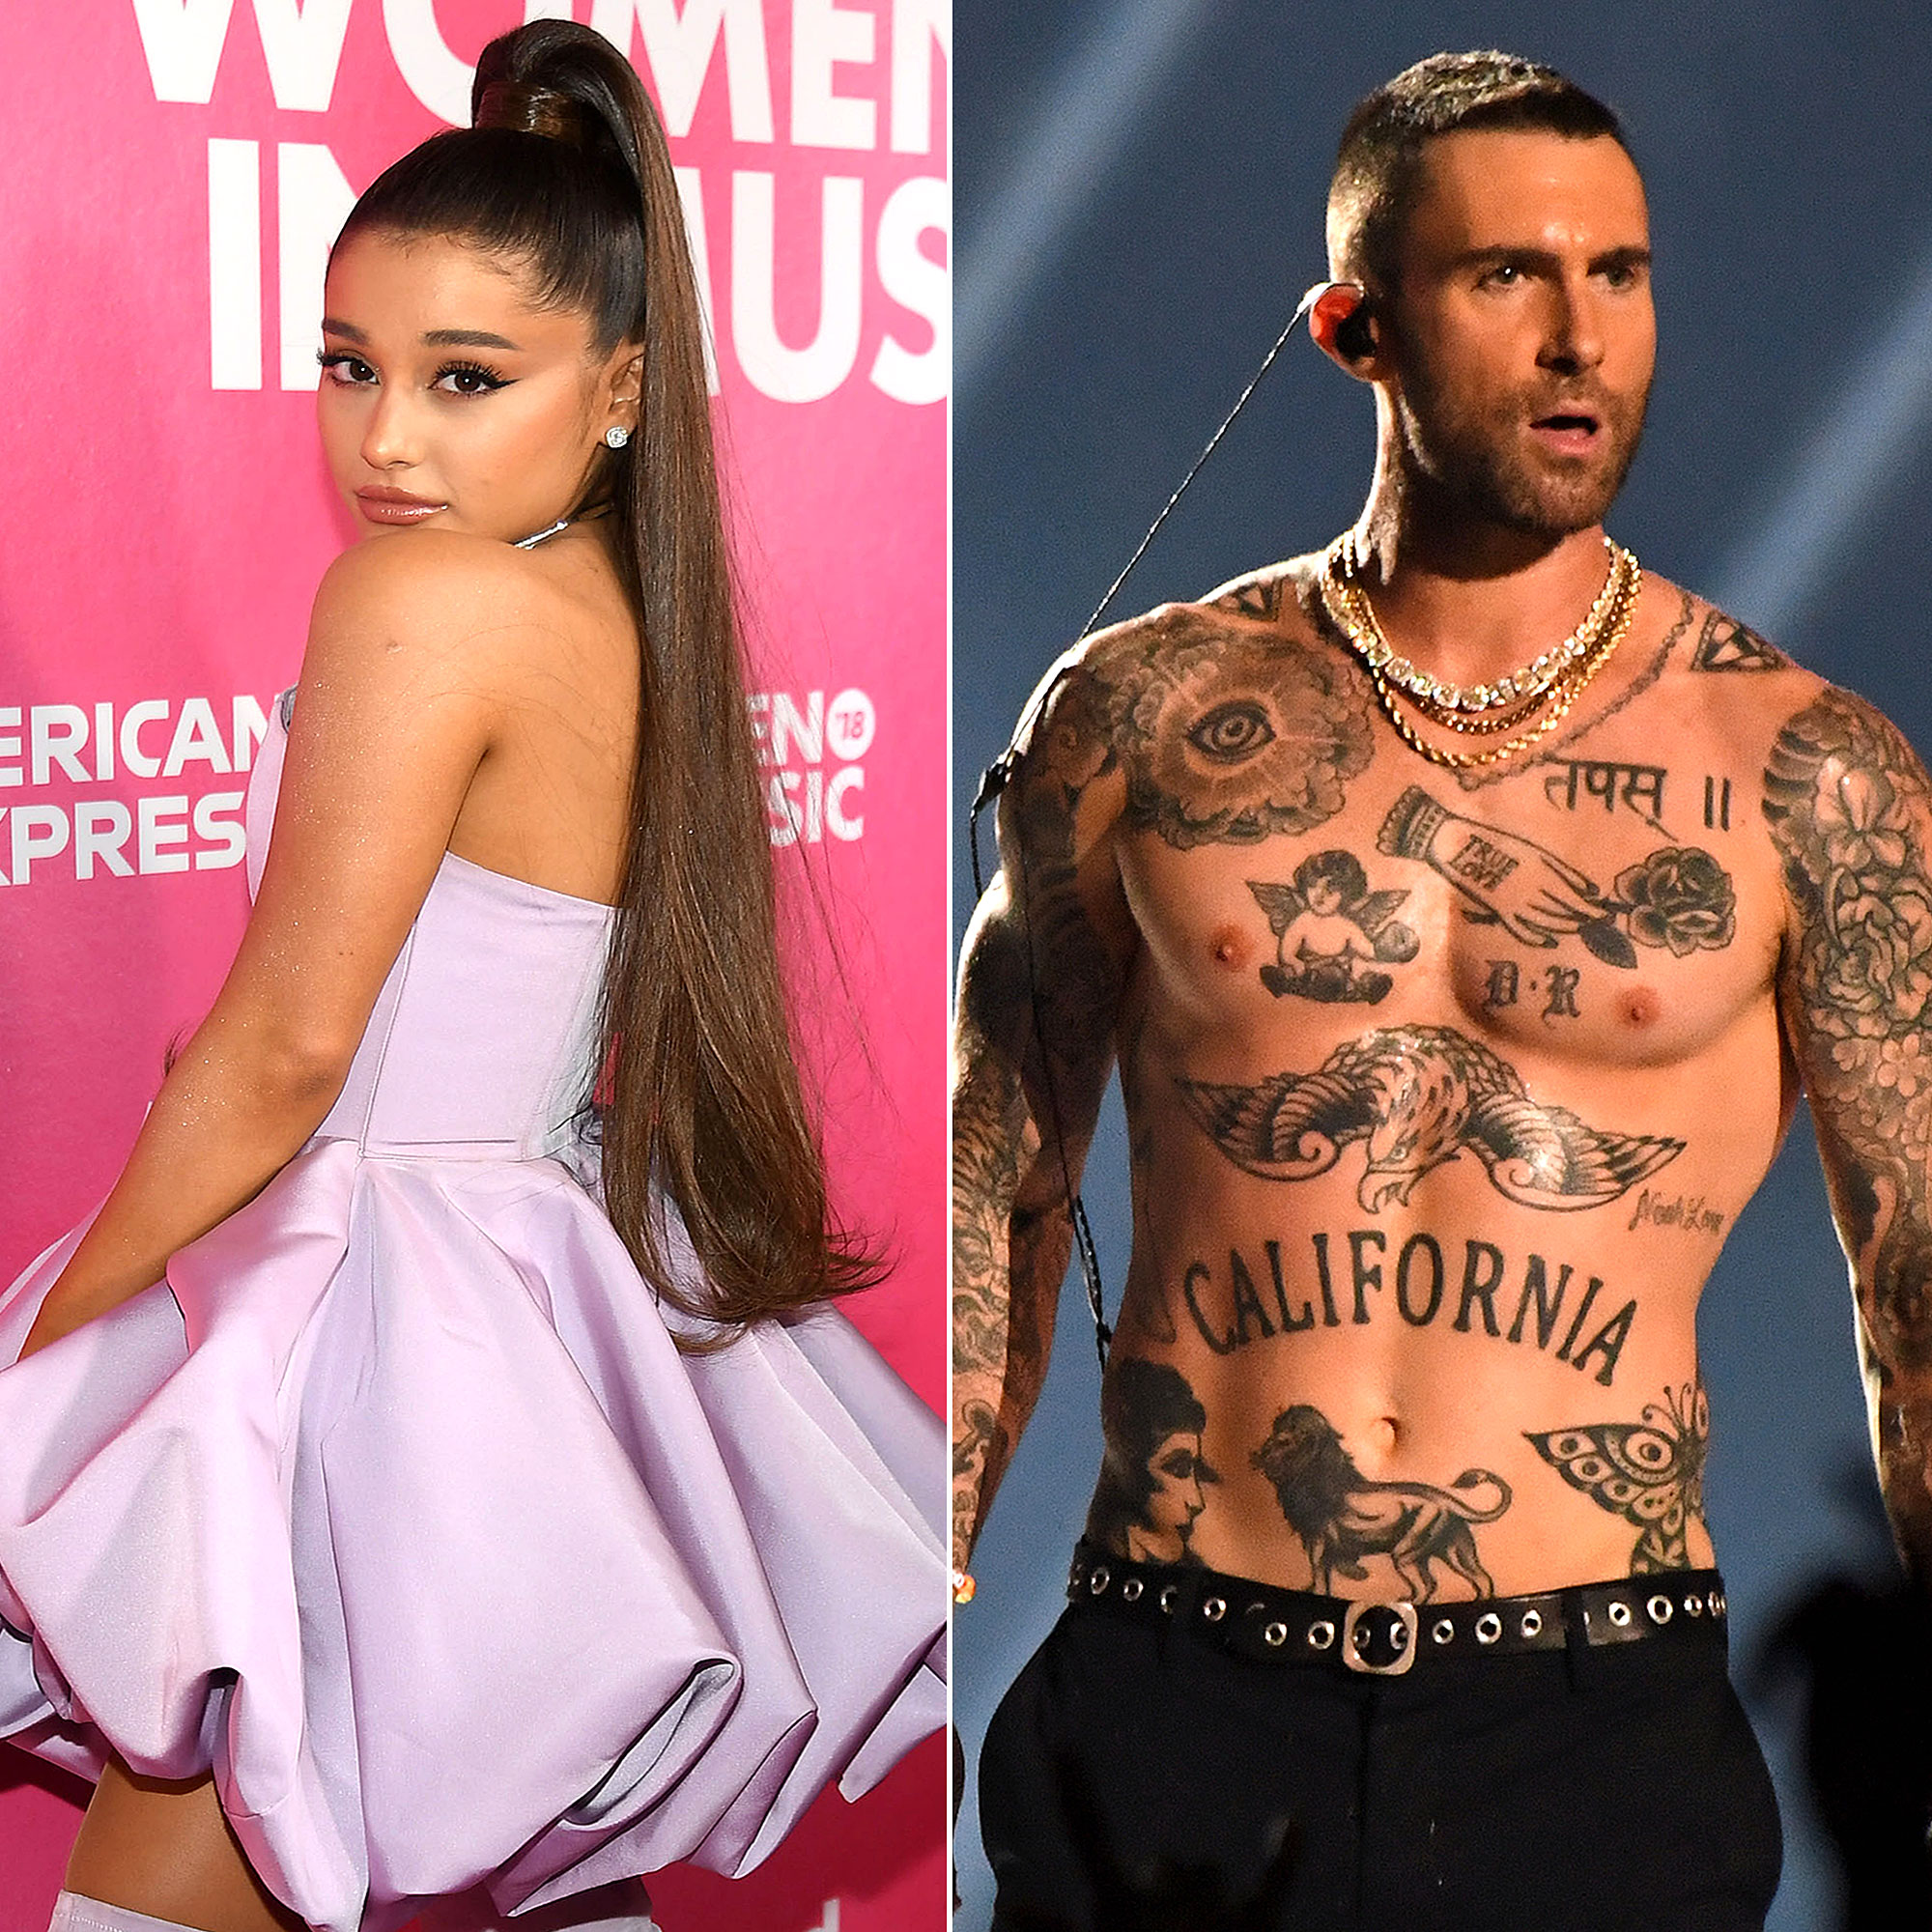 The Biggest Music Stories of 2019 So Far - Ariana Grande and Adam Levine of Maroon 5.